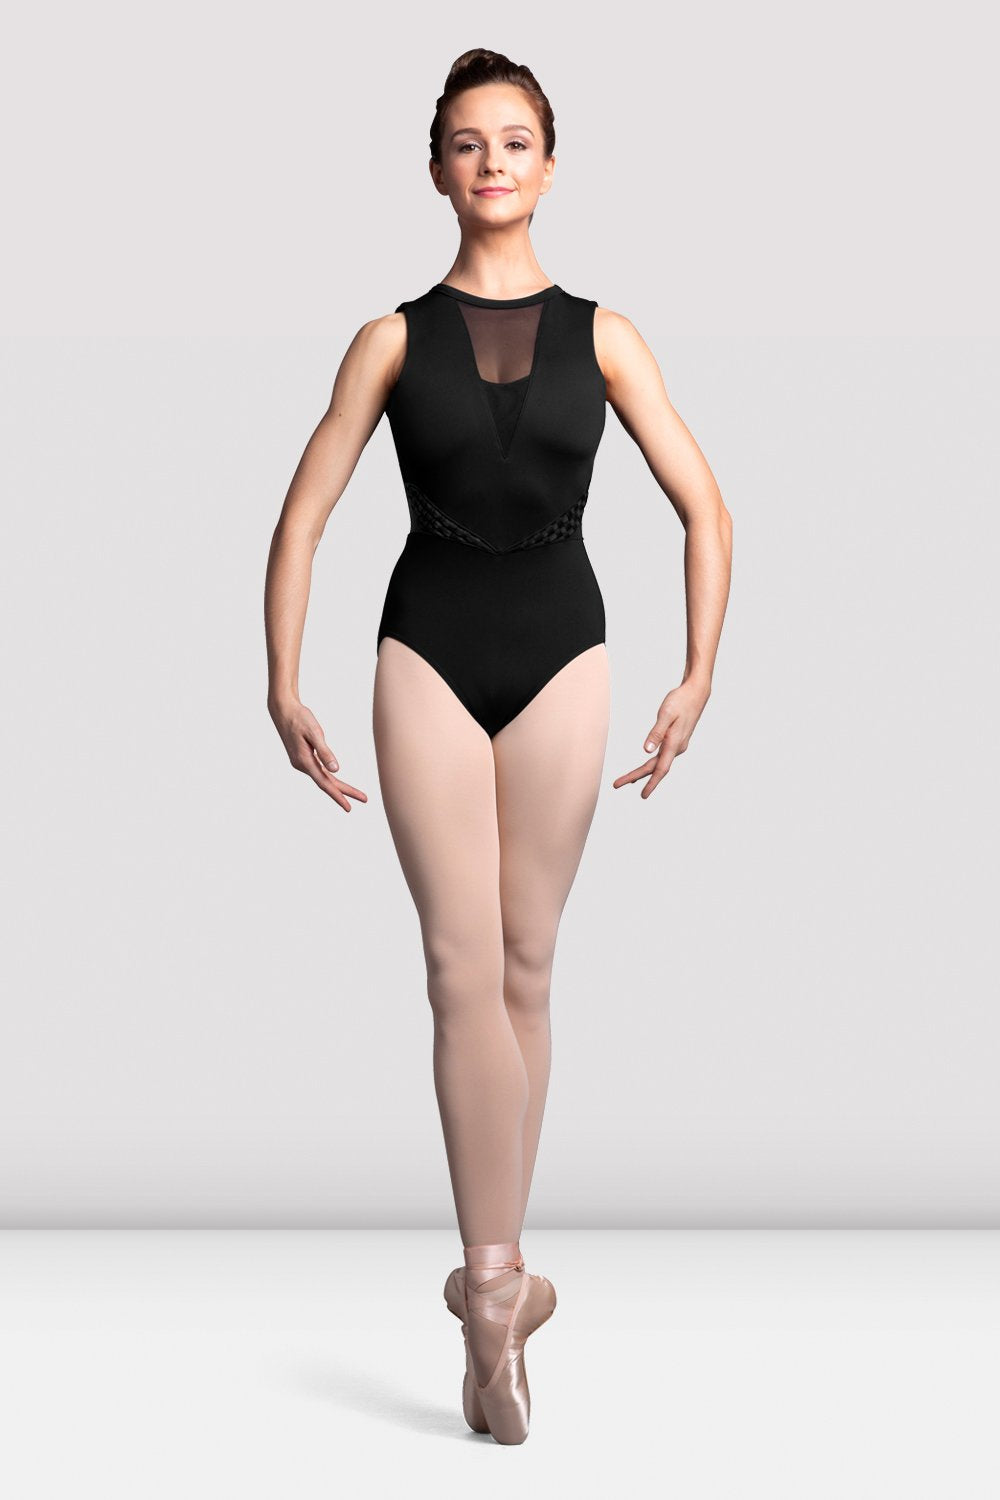 Ladies Boutique Weave Trim Tank Leotard - BLOCH US